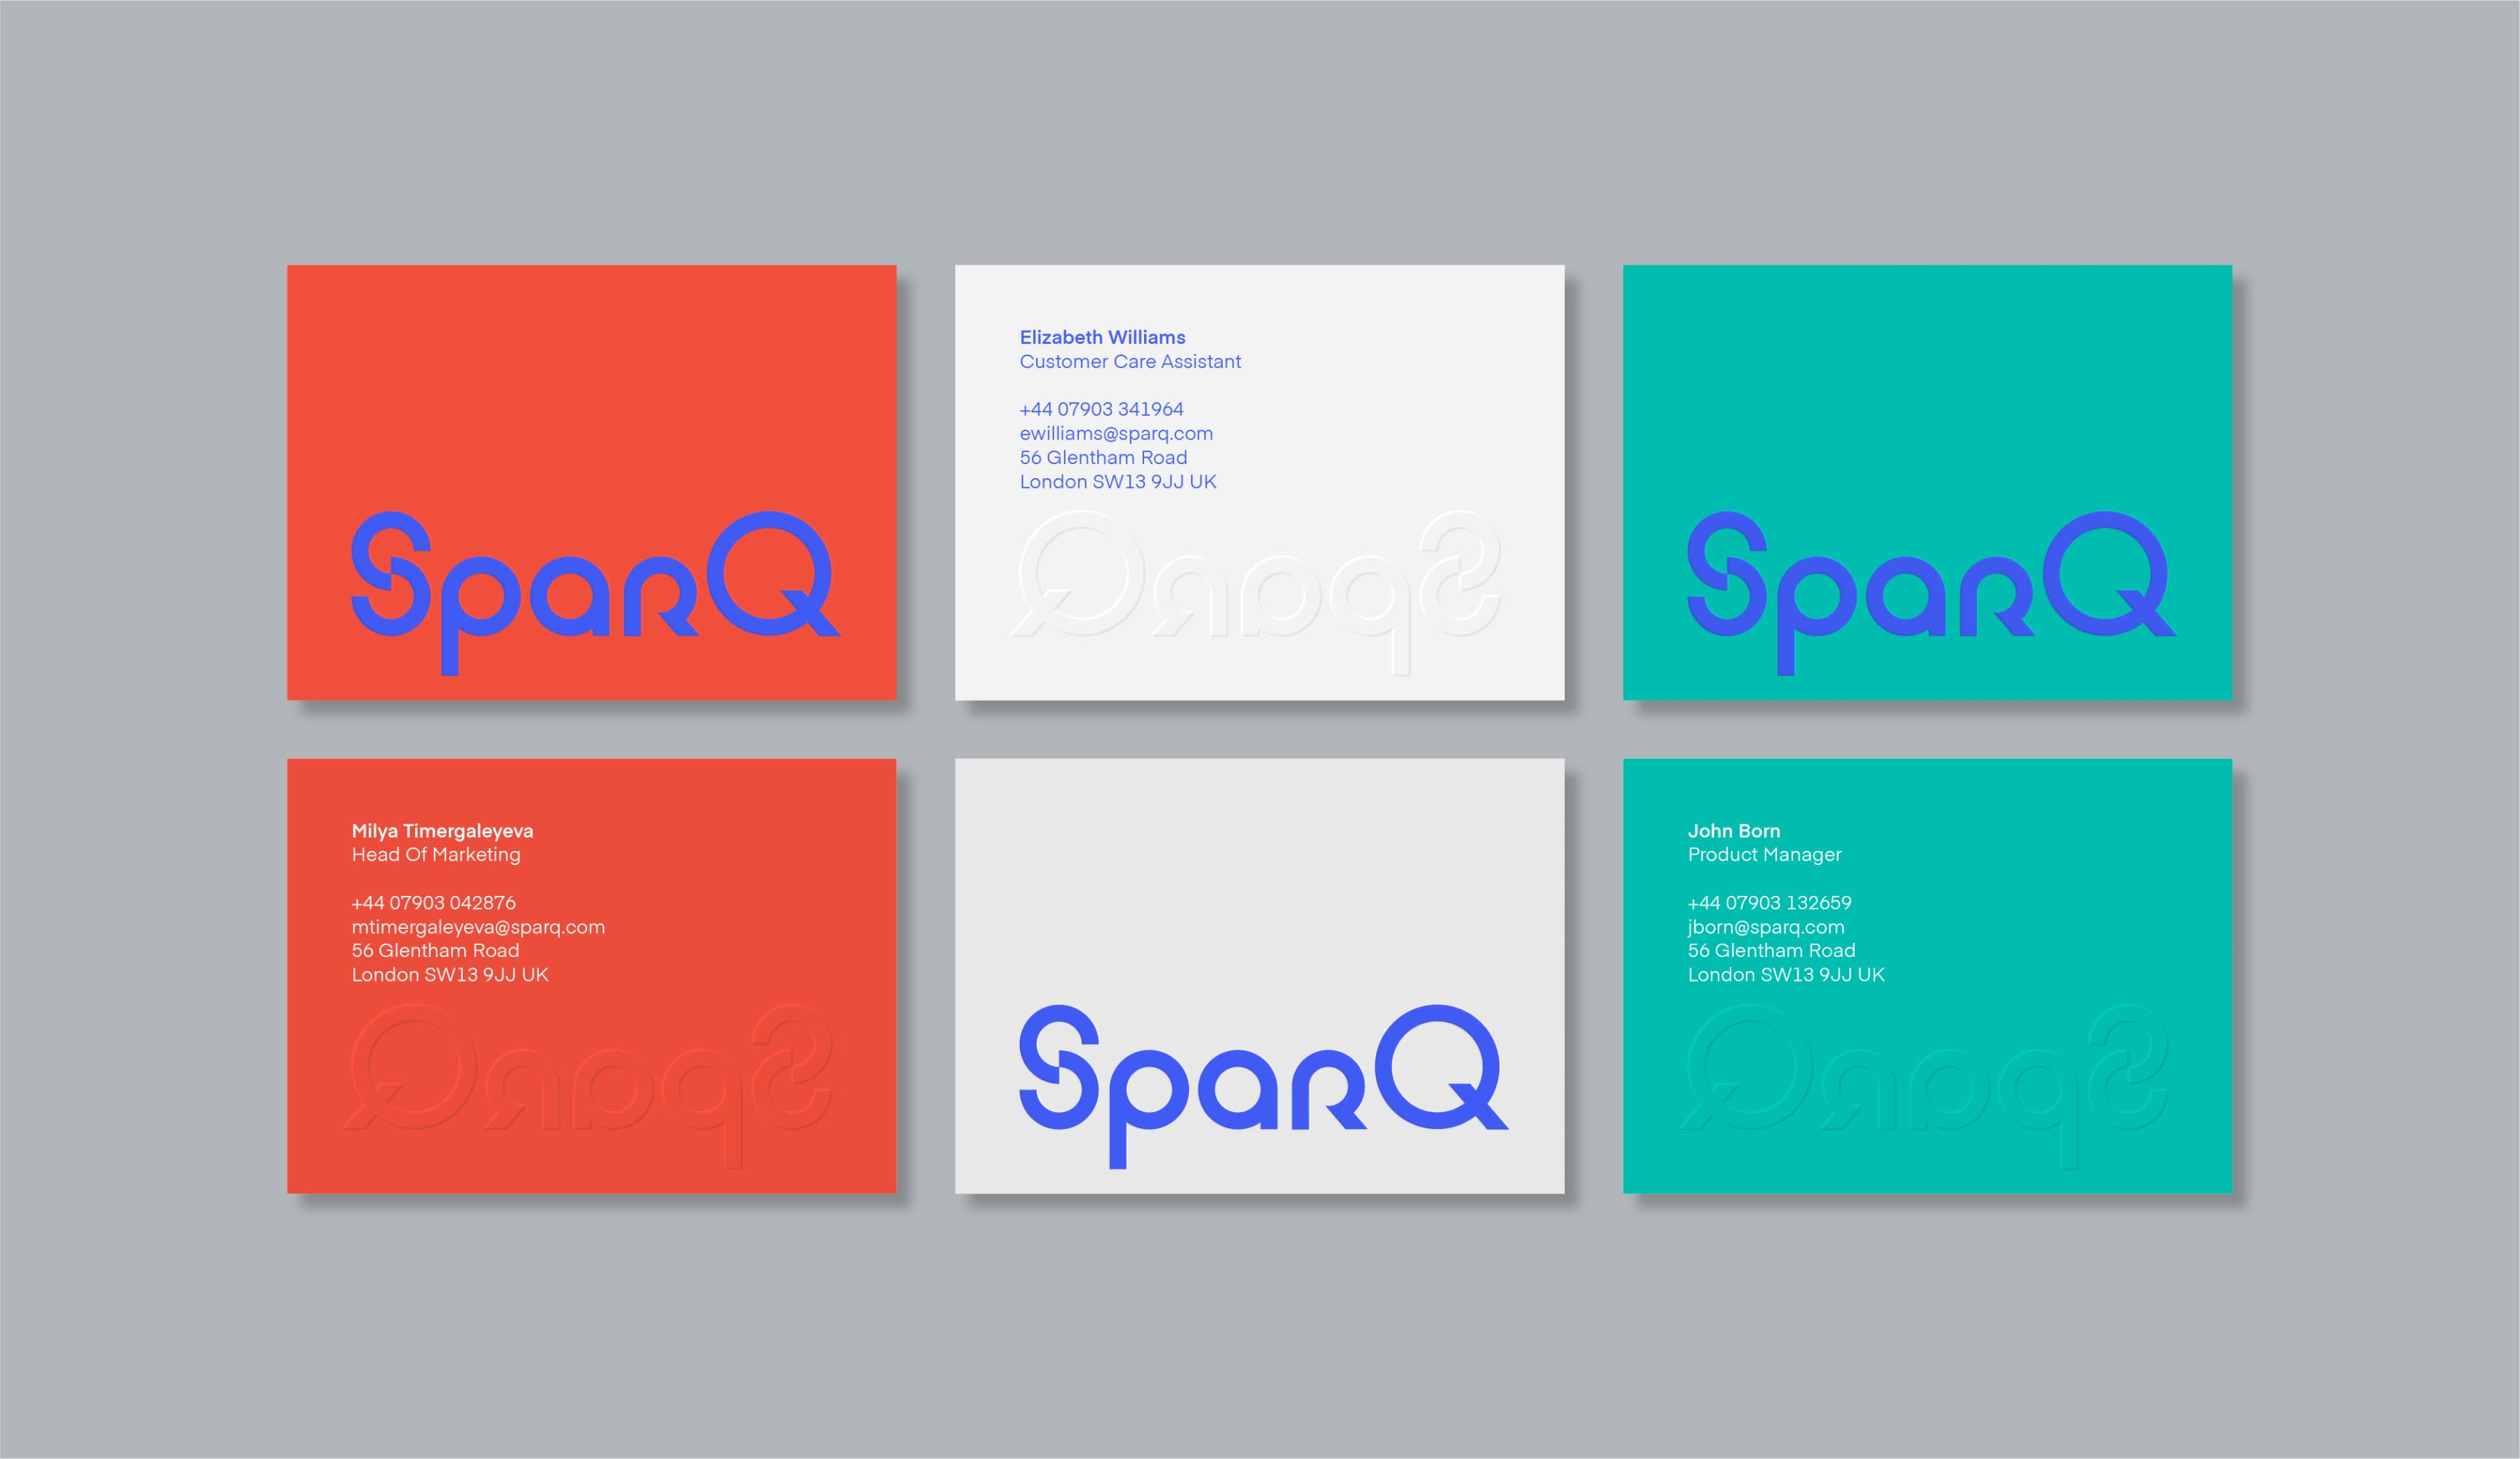 SparQ digital TV software branding